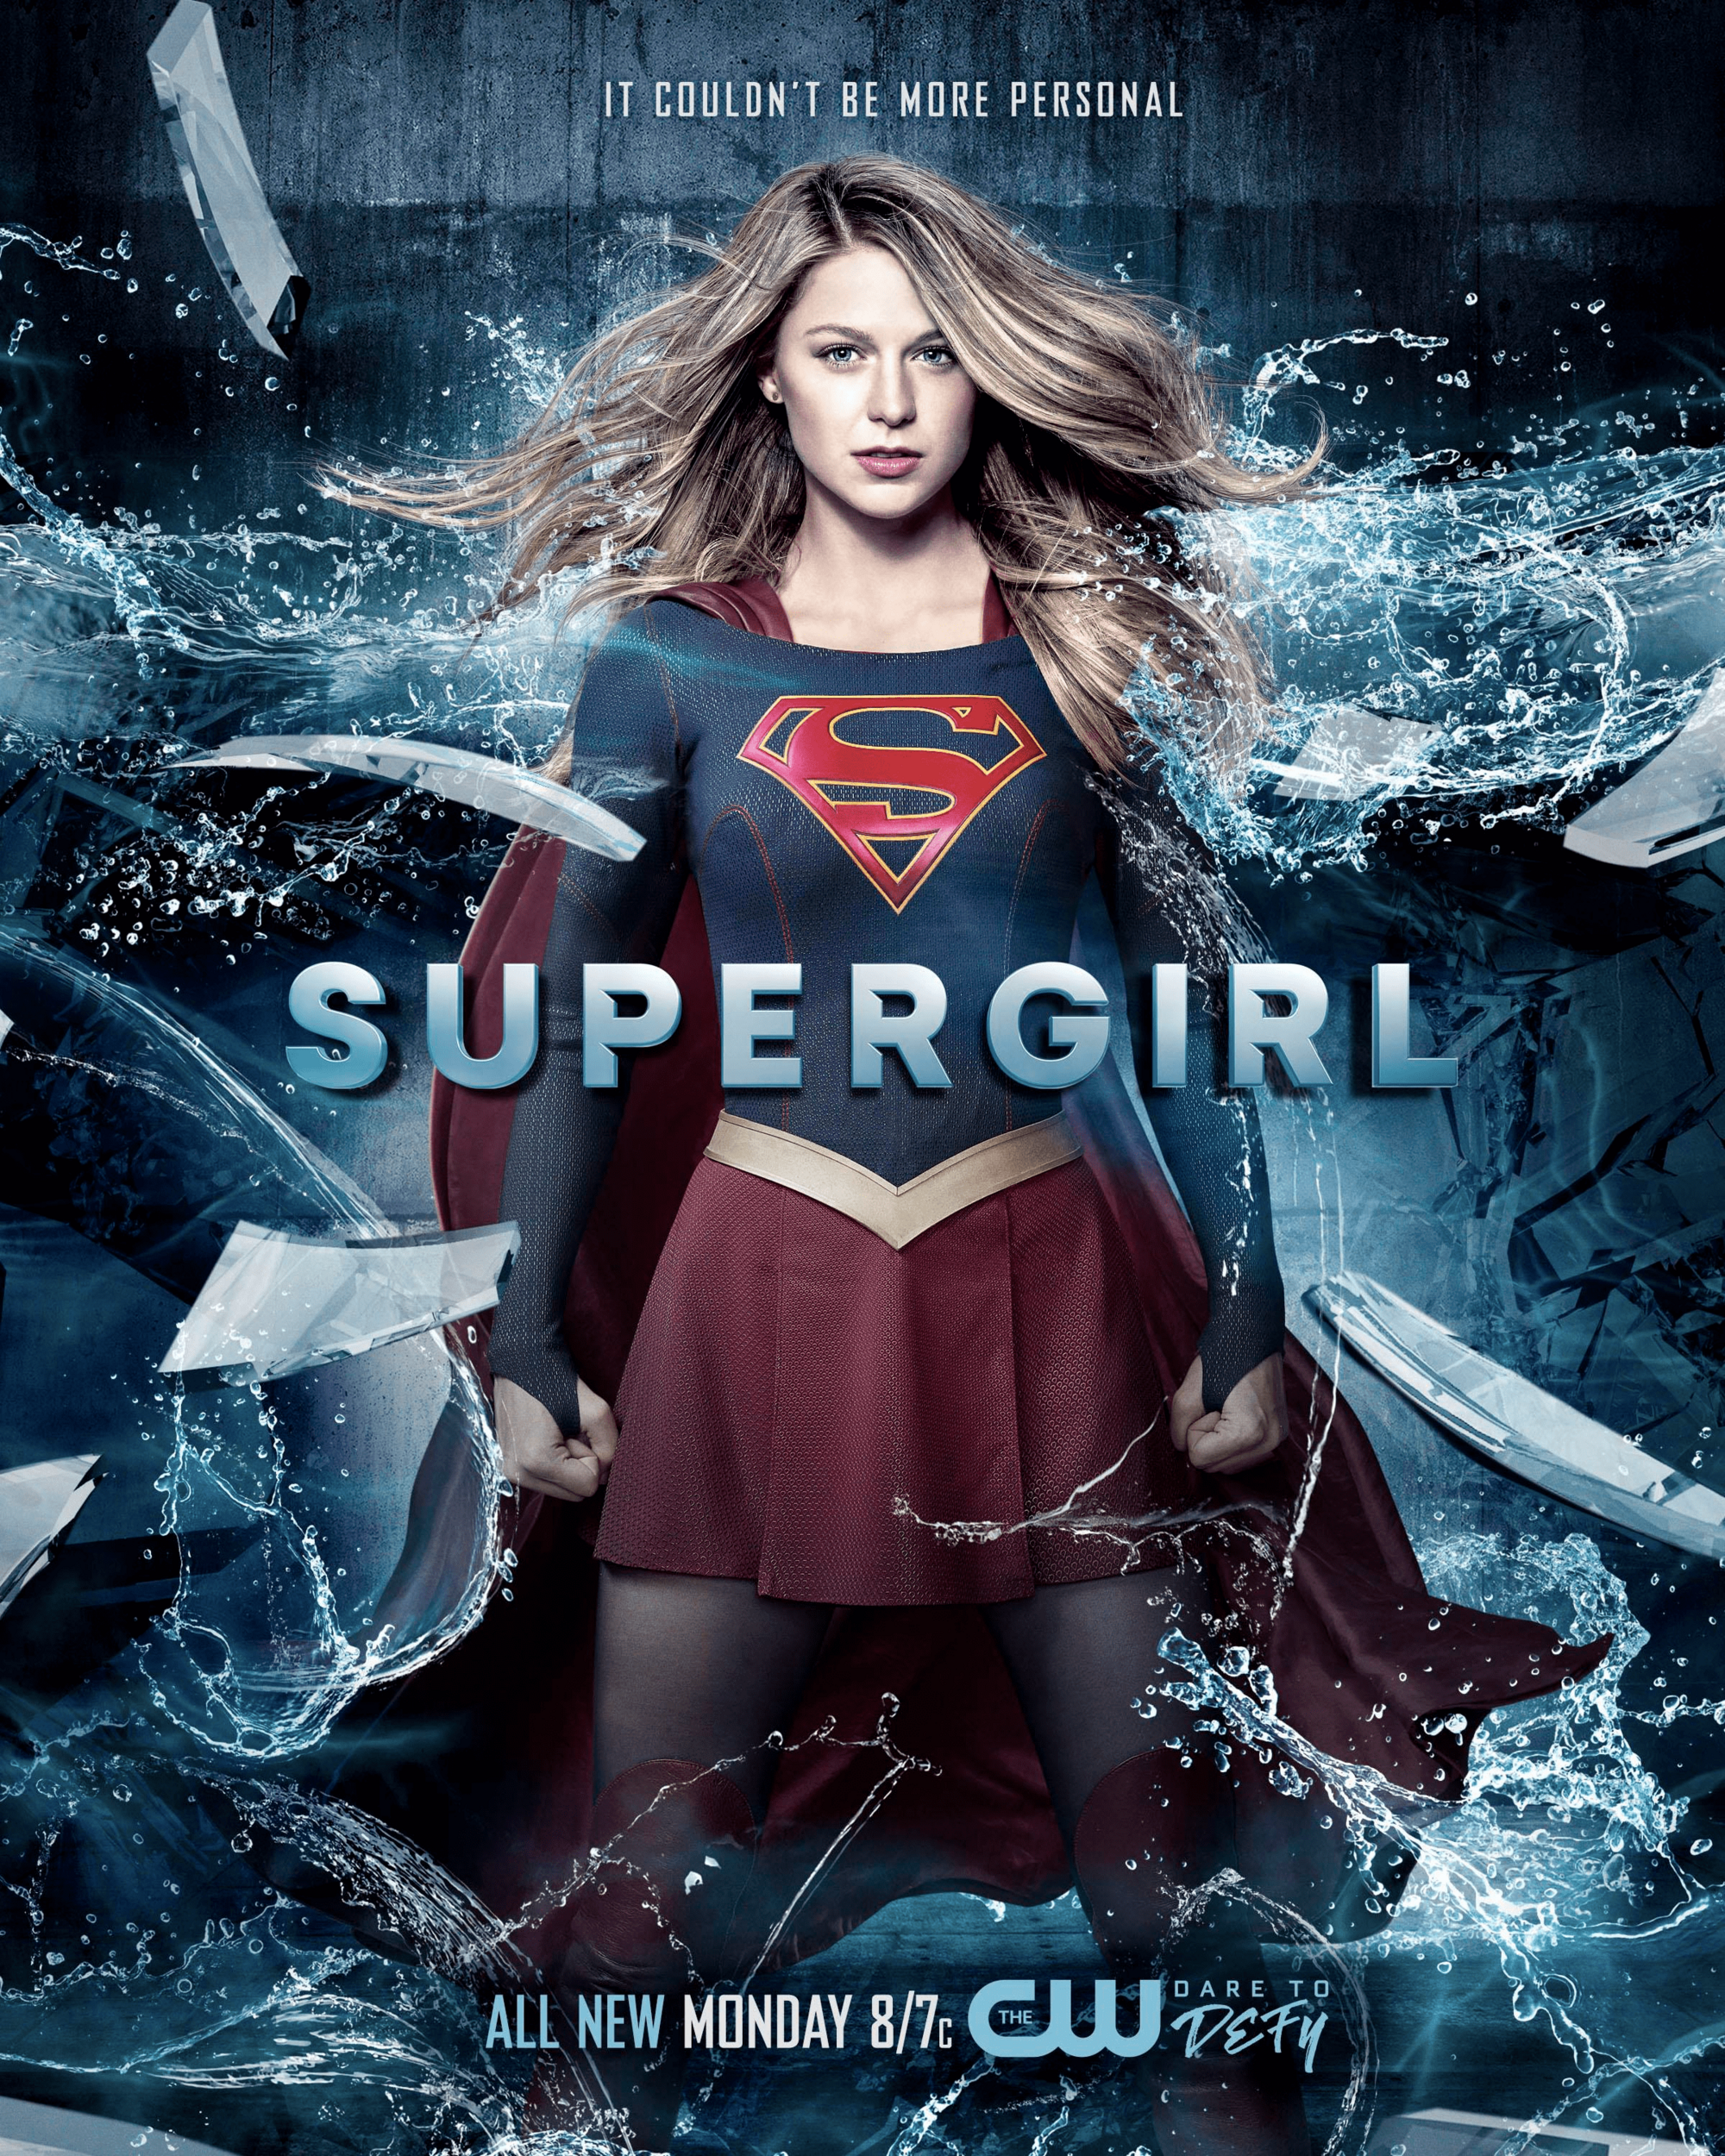 Supergirl - Season 4 - Episode 6 (Call to Action)